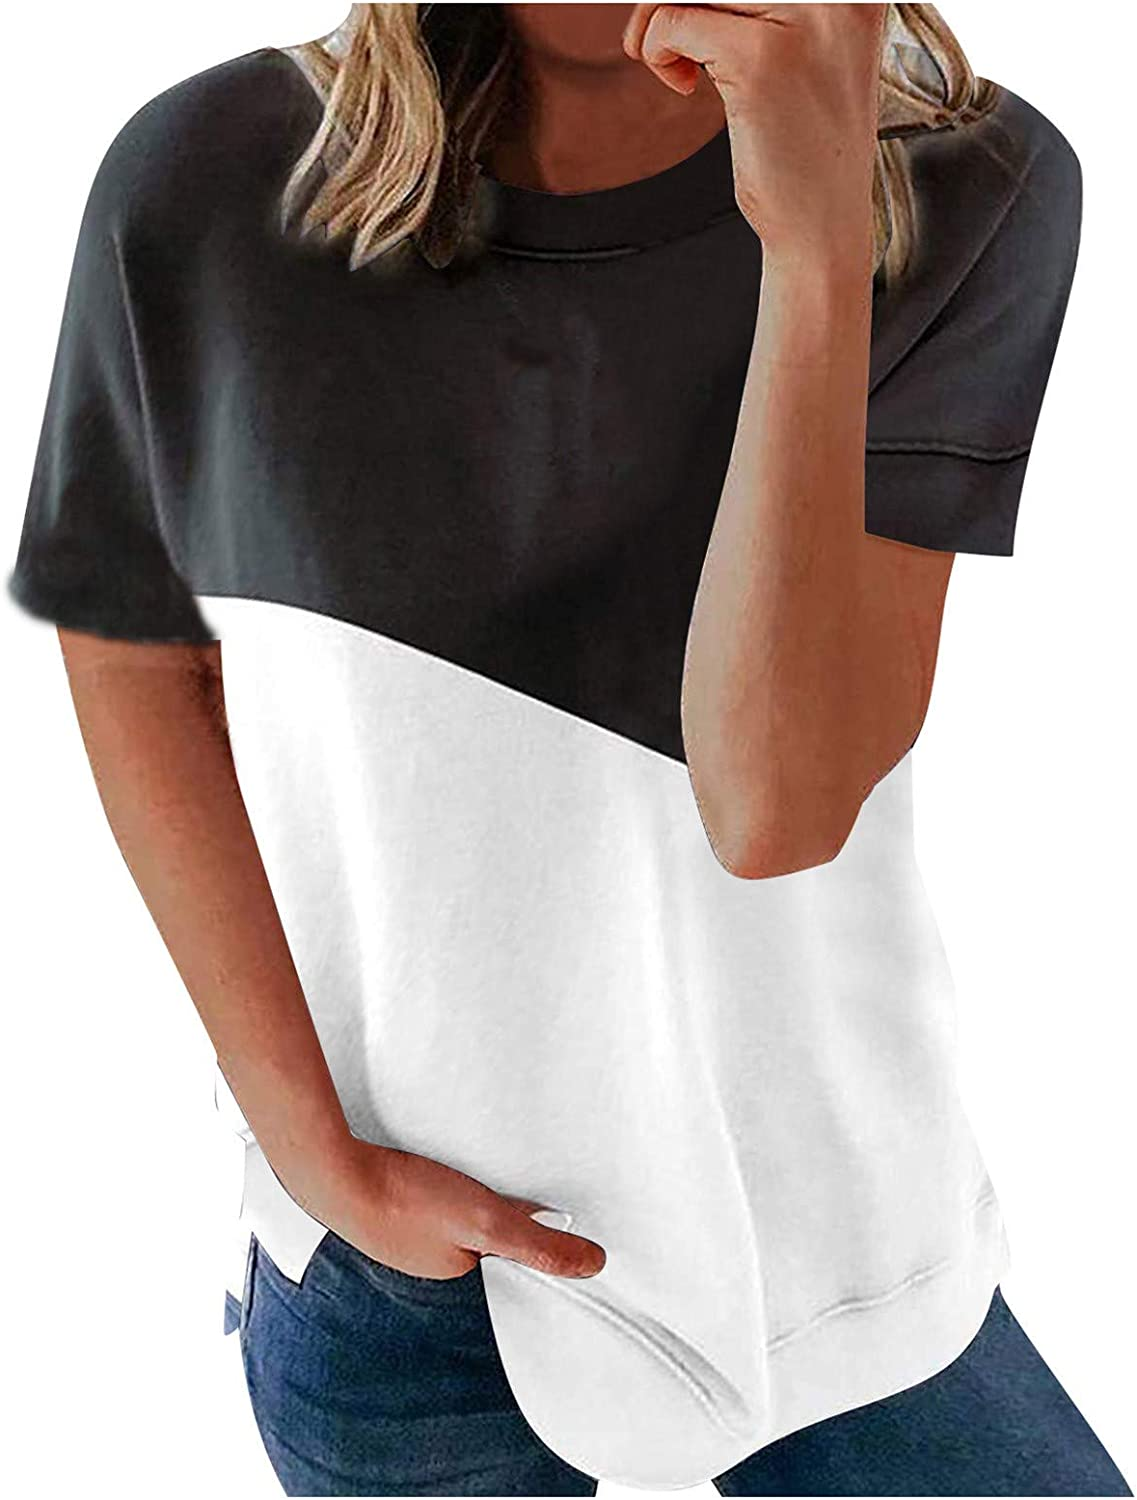 FABIURT Black Shirts for Women Dressy Plus Size Women's V-Neck Summer Casual Letters Printed Short Sleeves Graphic T-Shirt